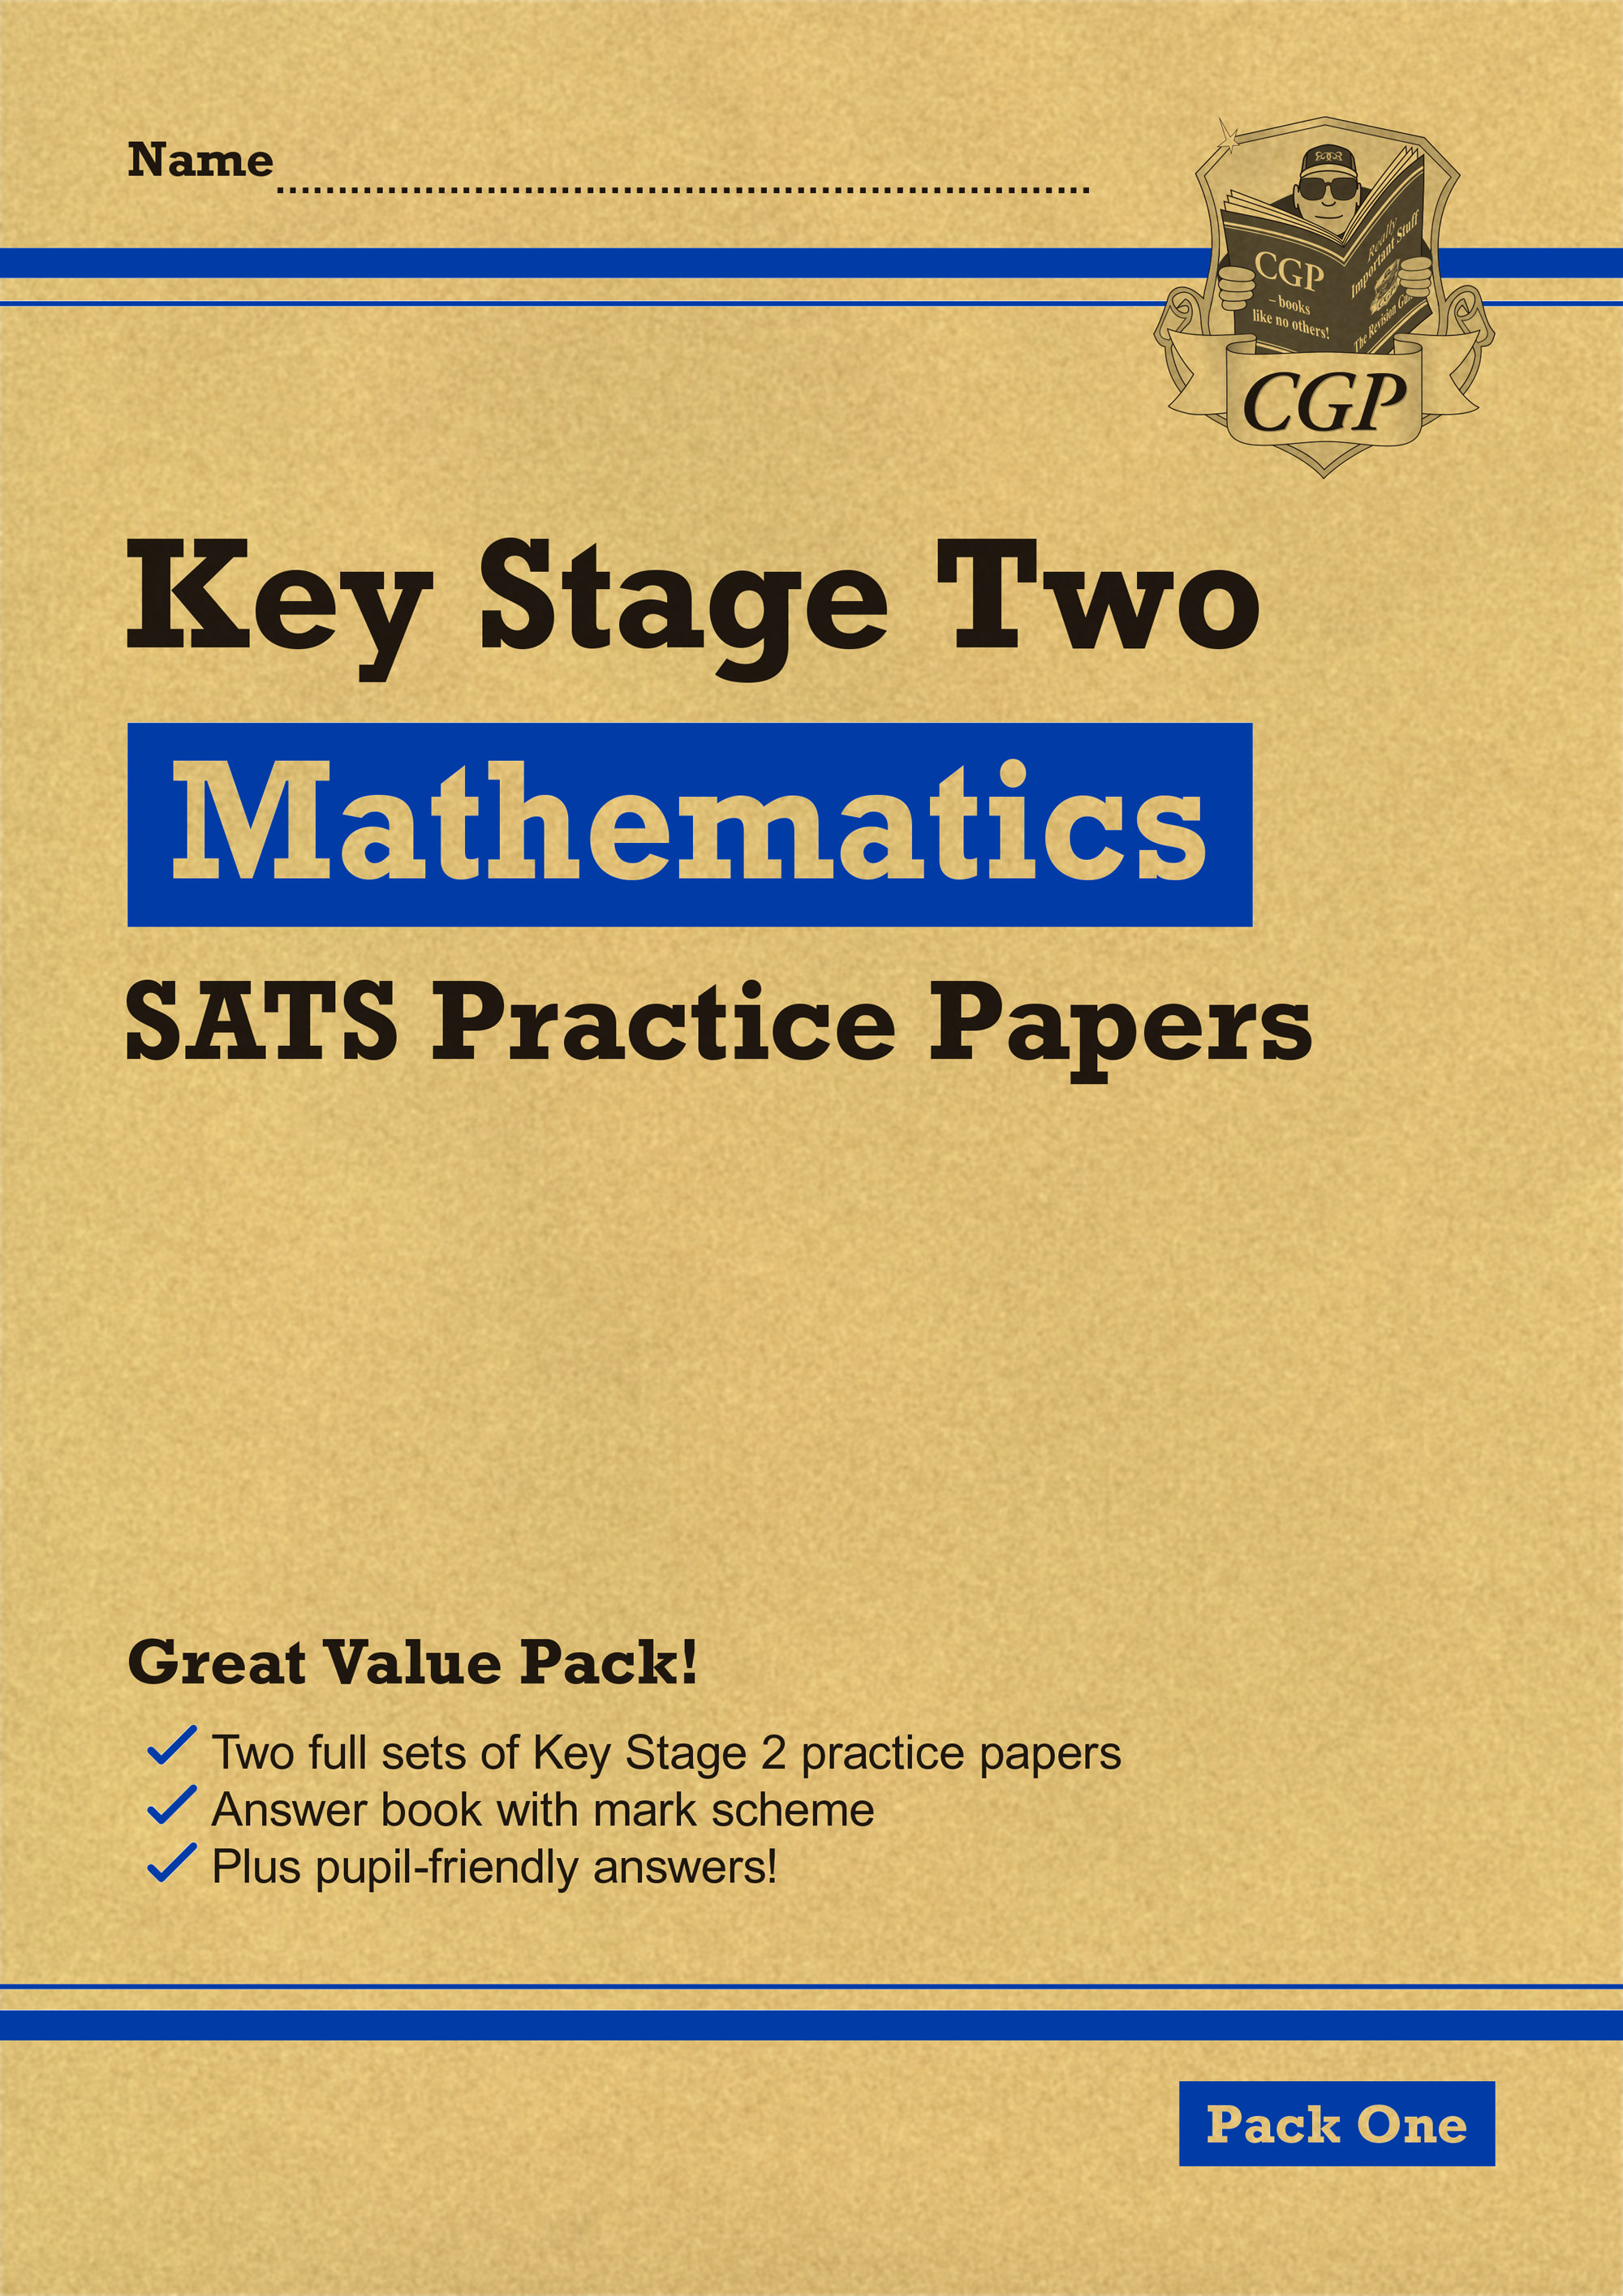 New KS2 Maths SATS Practice Papers: Pack 1 (for the 2020 tests)